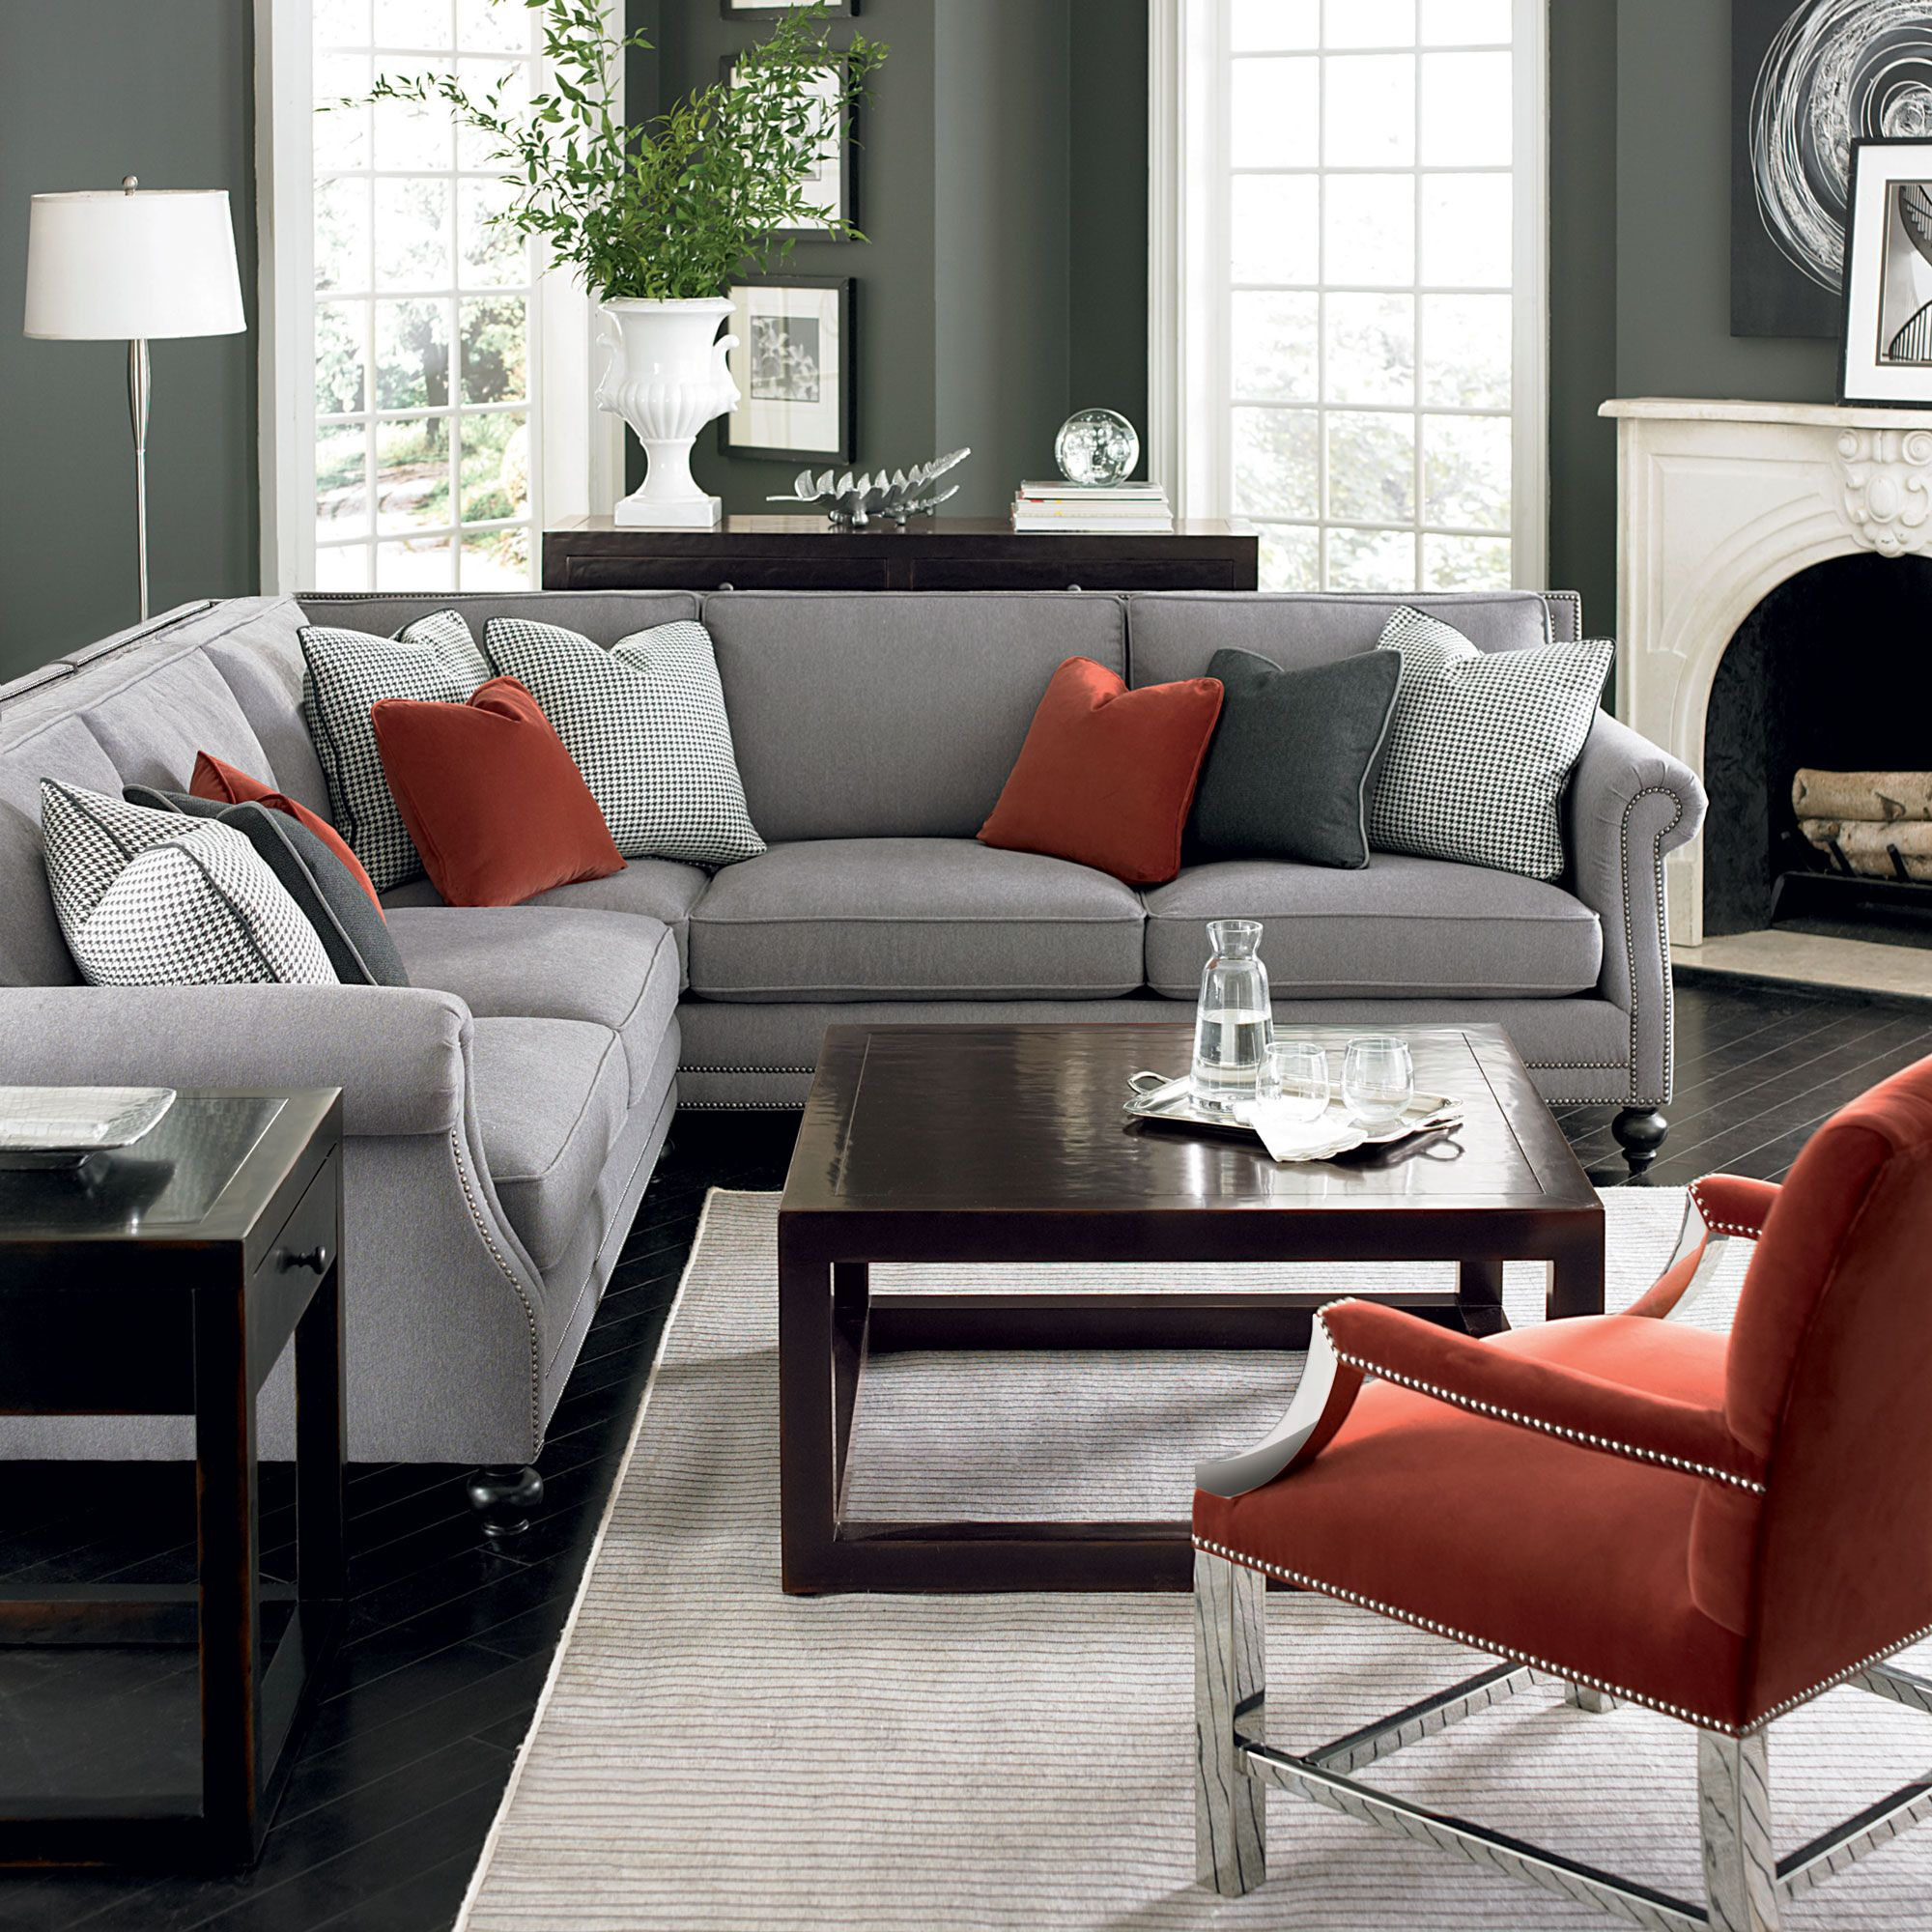 Pinterest Nadinevoikos Bernhardt Living Room In Grey Red And Silver Brae Home Is Where